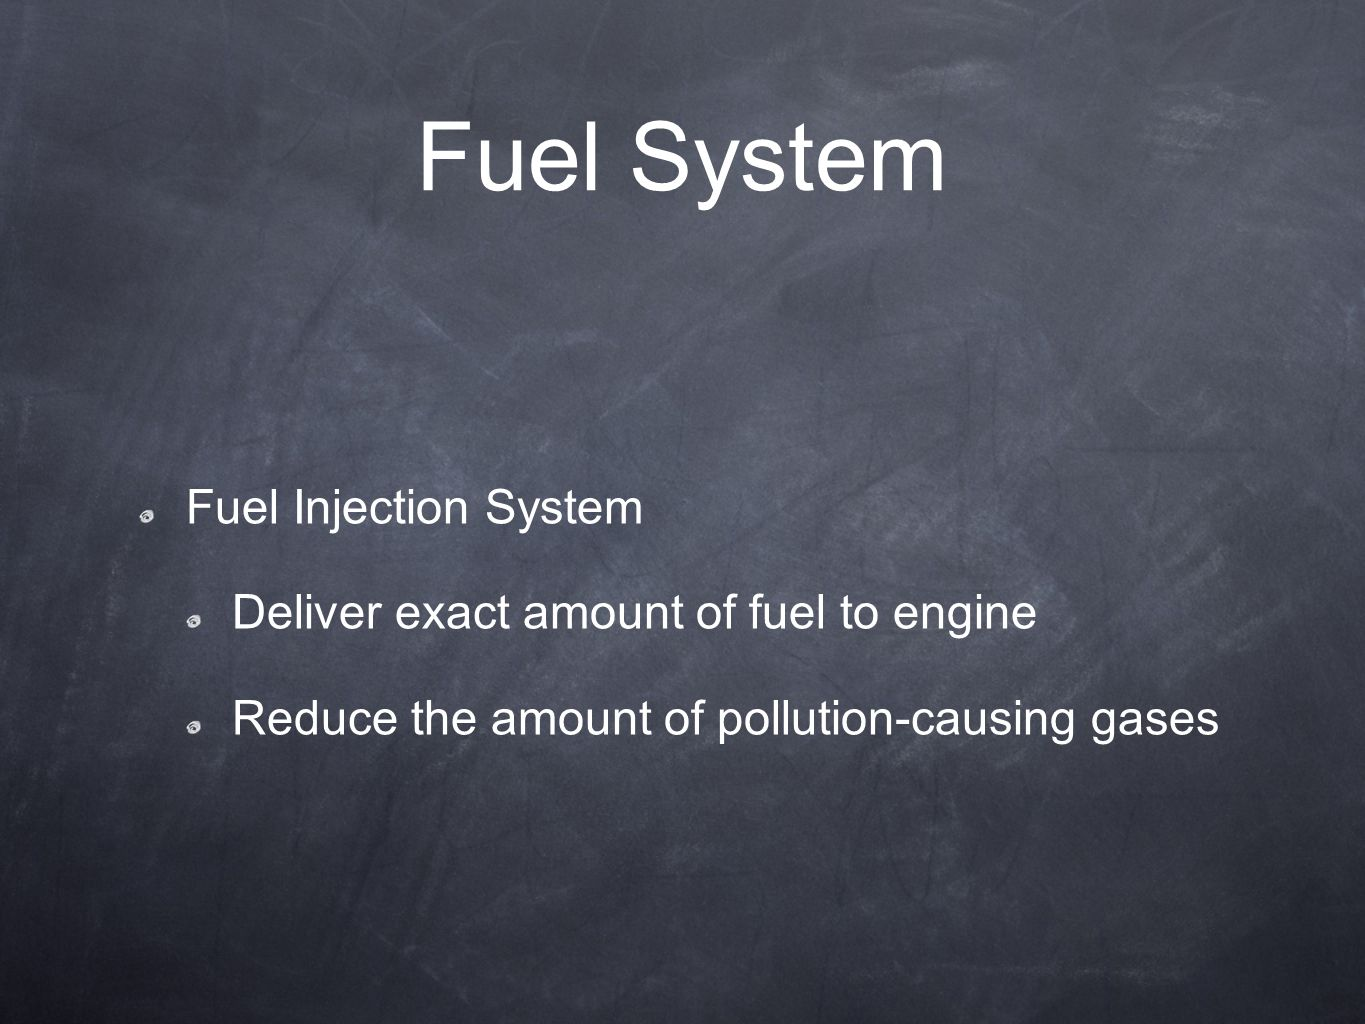 Fuel System Fuel Injection System Deliver exact amount of fuel to engine Reduce the amount of pollution-causing gases